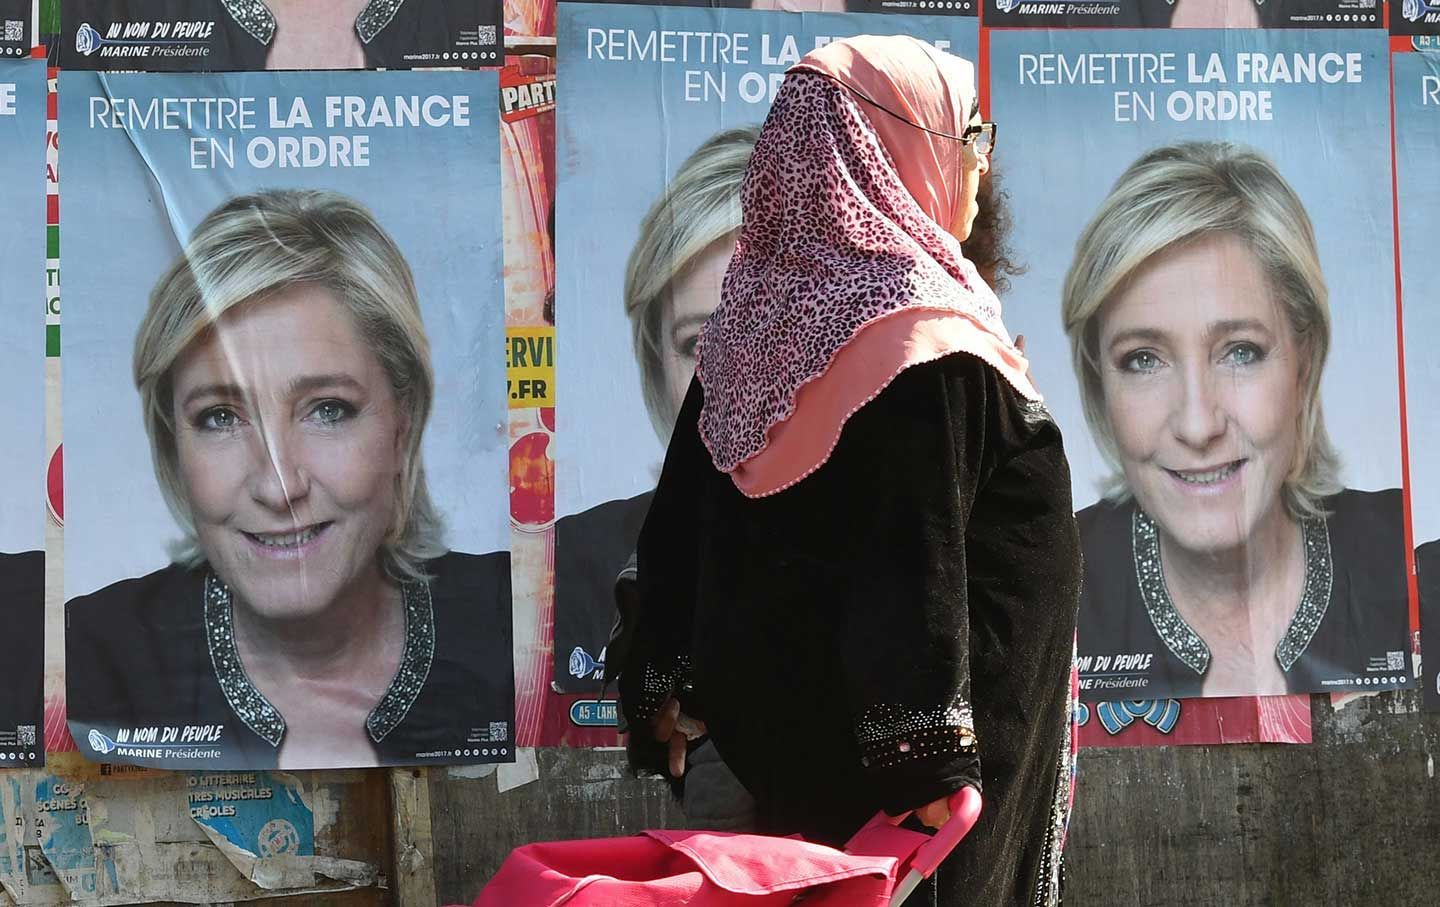 Marine Le Pen election posters.